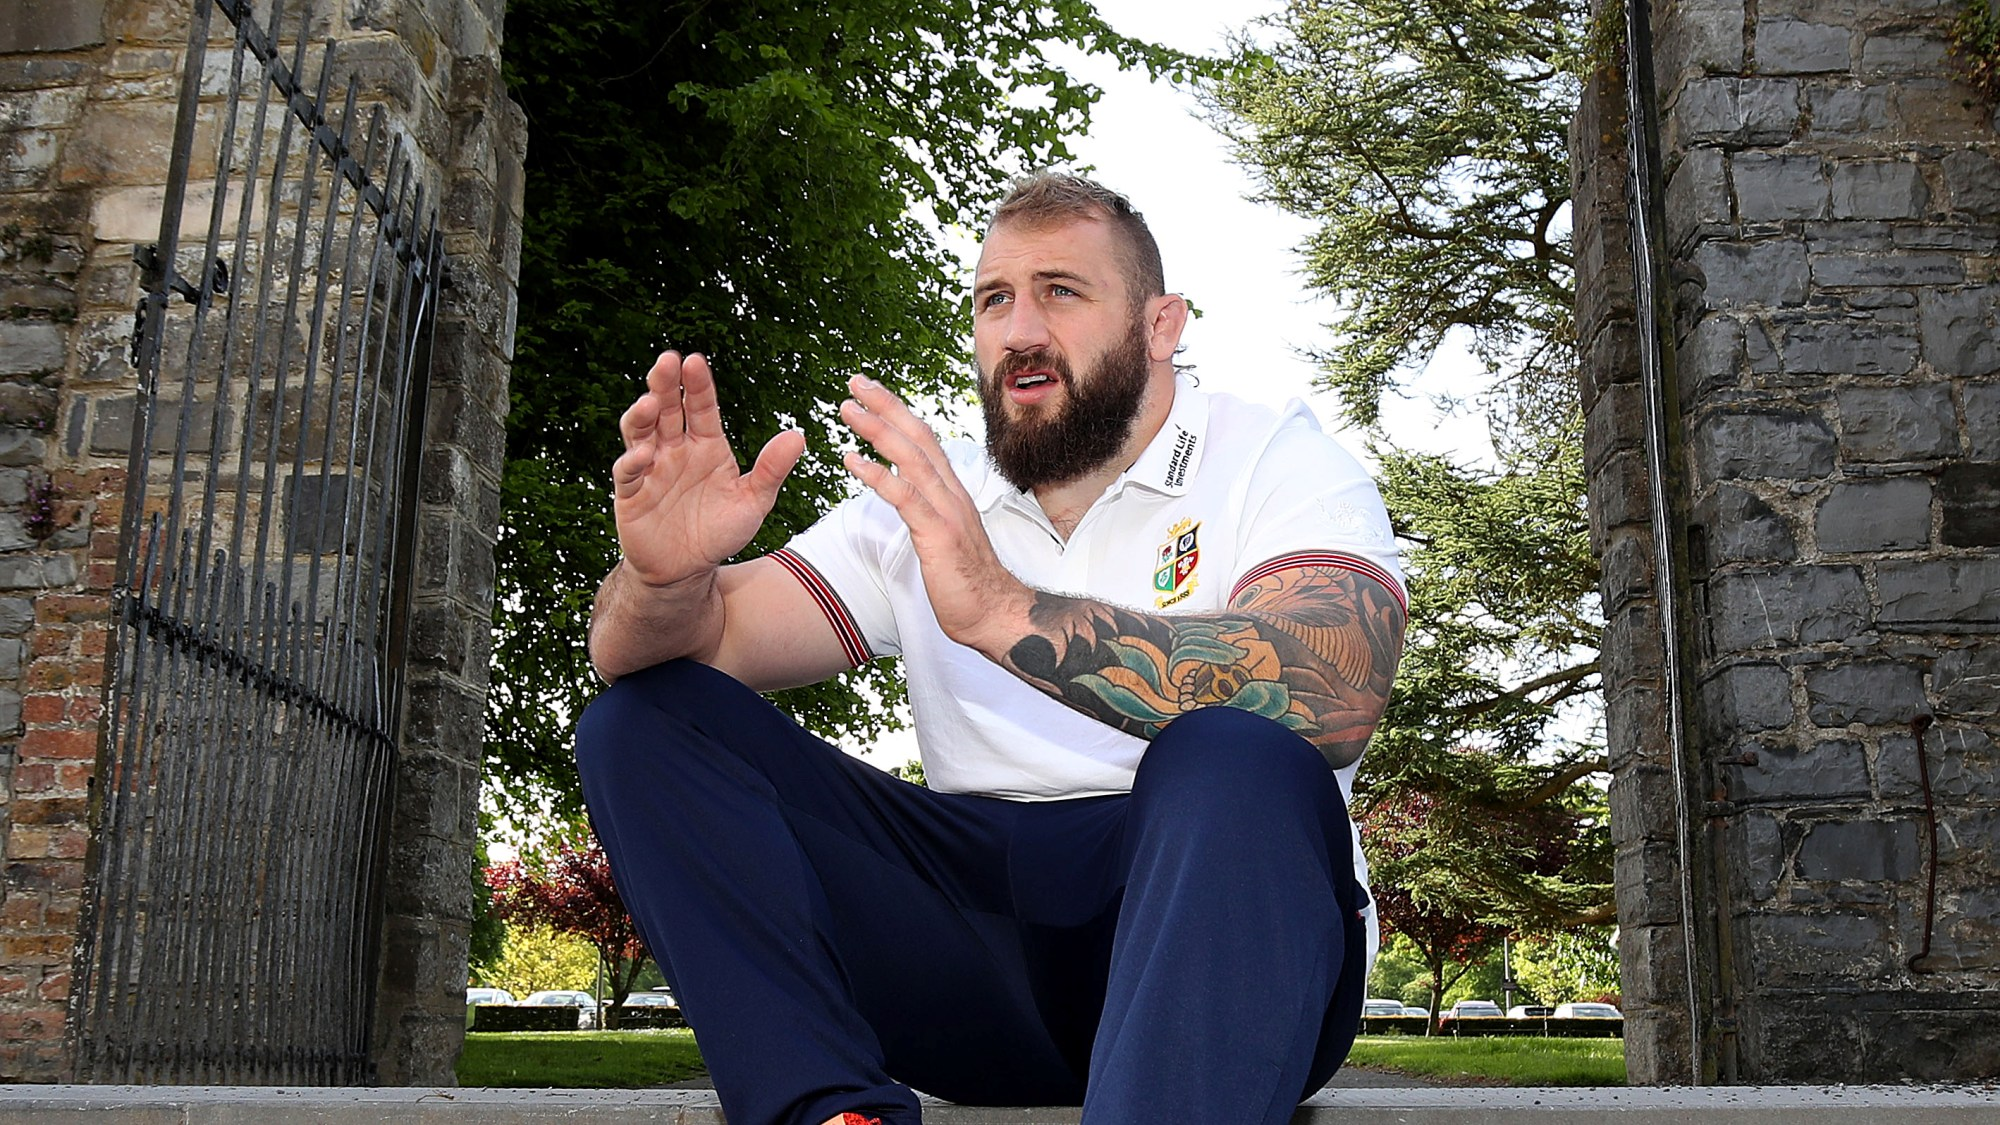 Joe Marler dishes on life in camp with the Lions